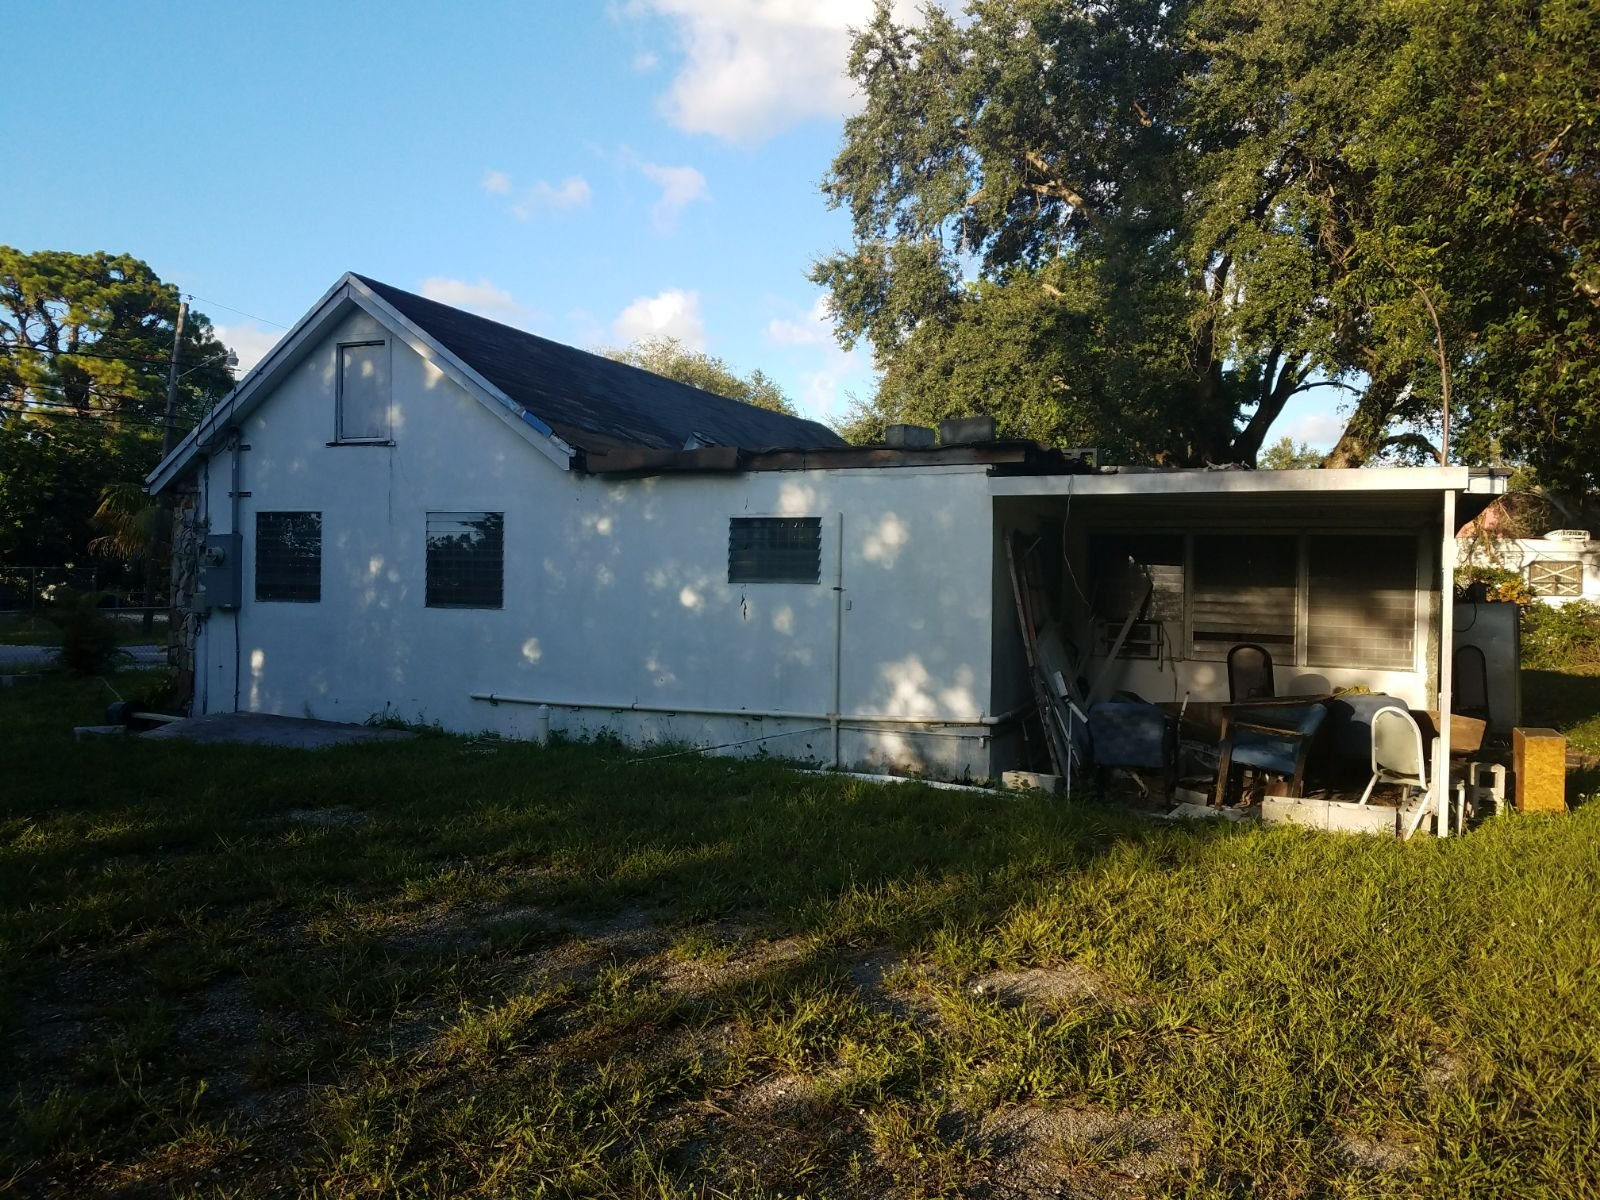 3196 NW 168TH TER, MIAMI GARDENS, FL 33056 - IRG Corporation